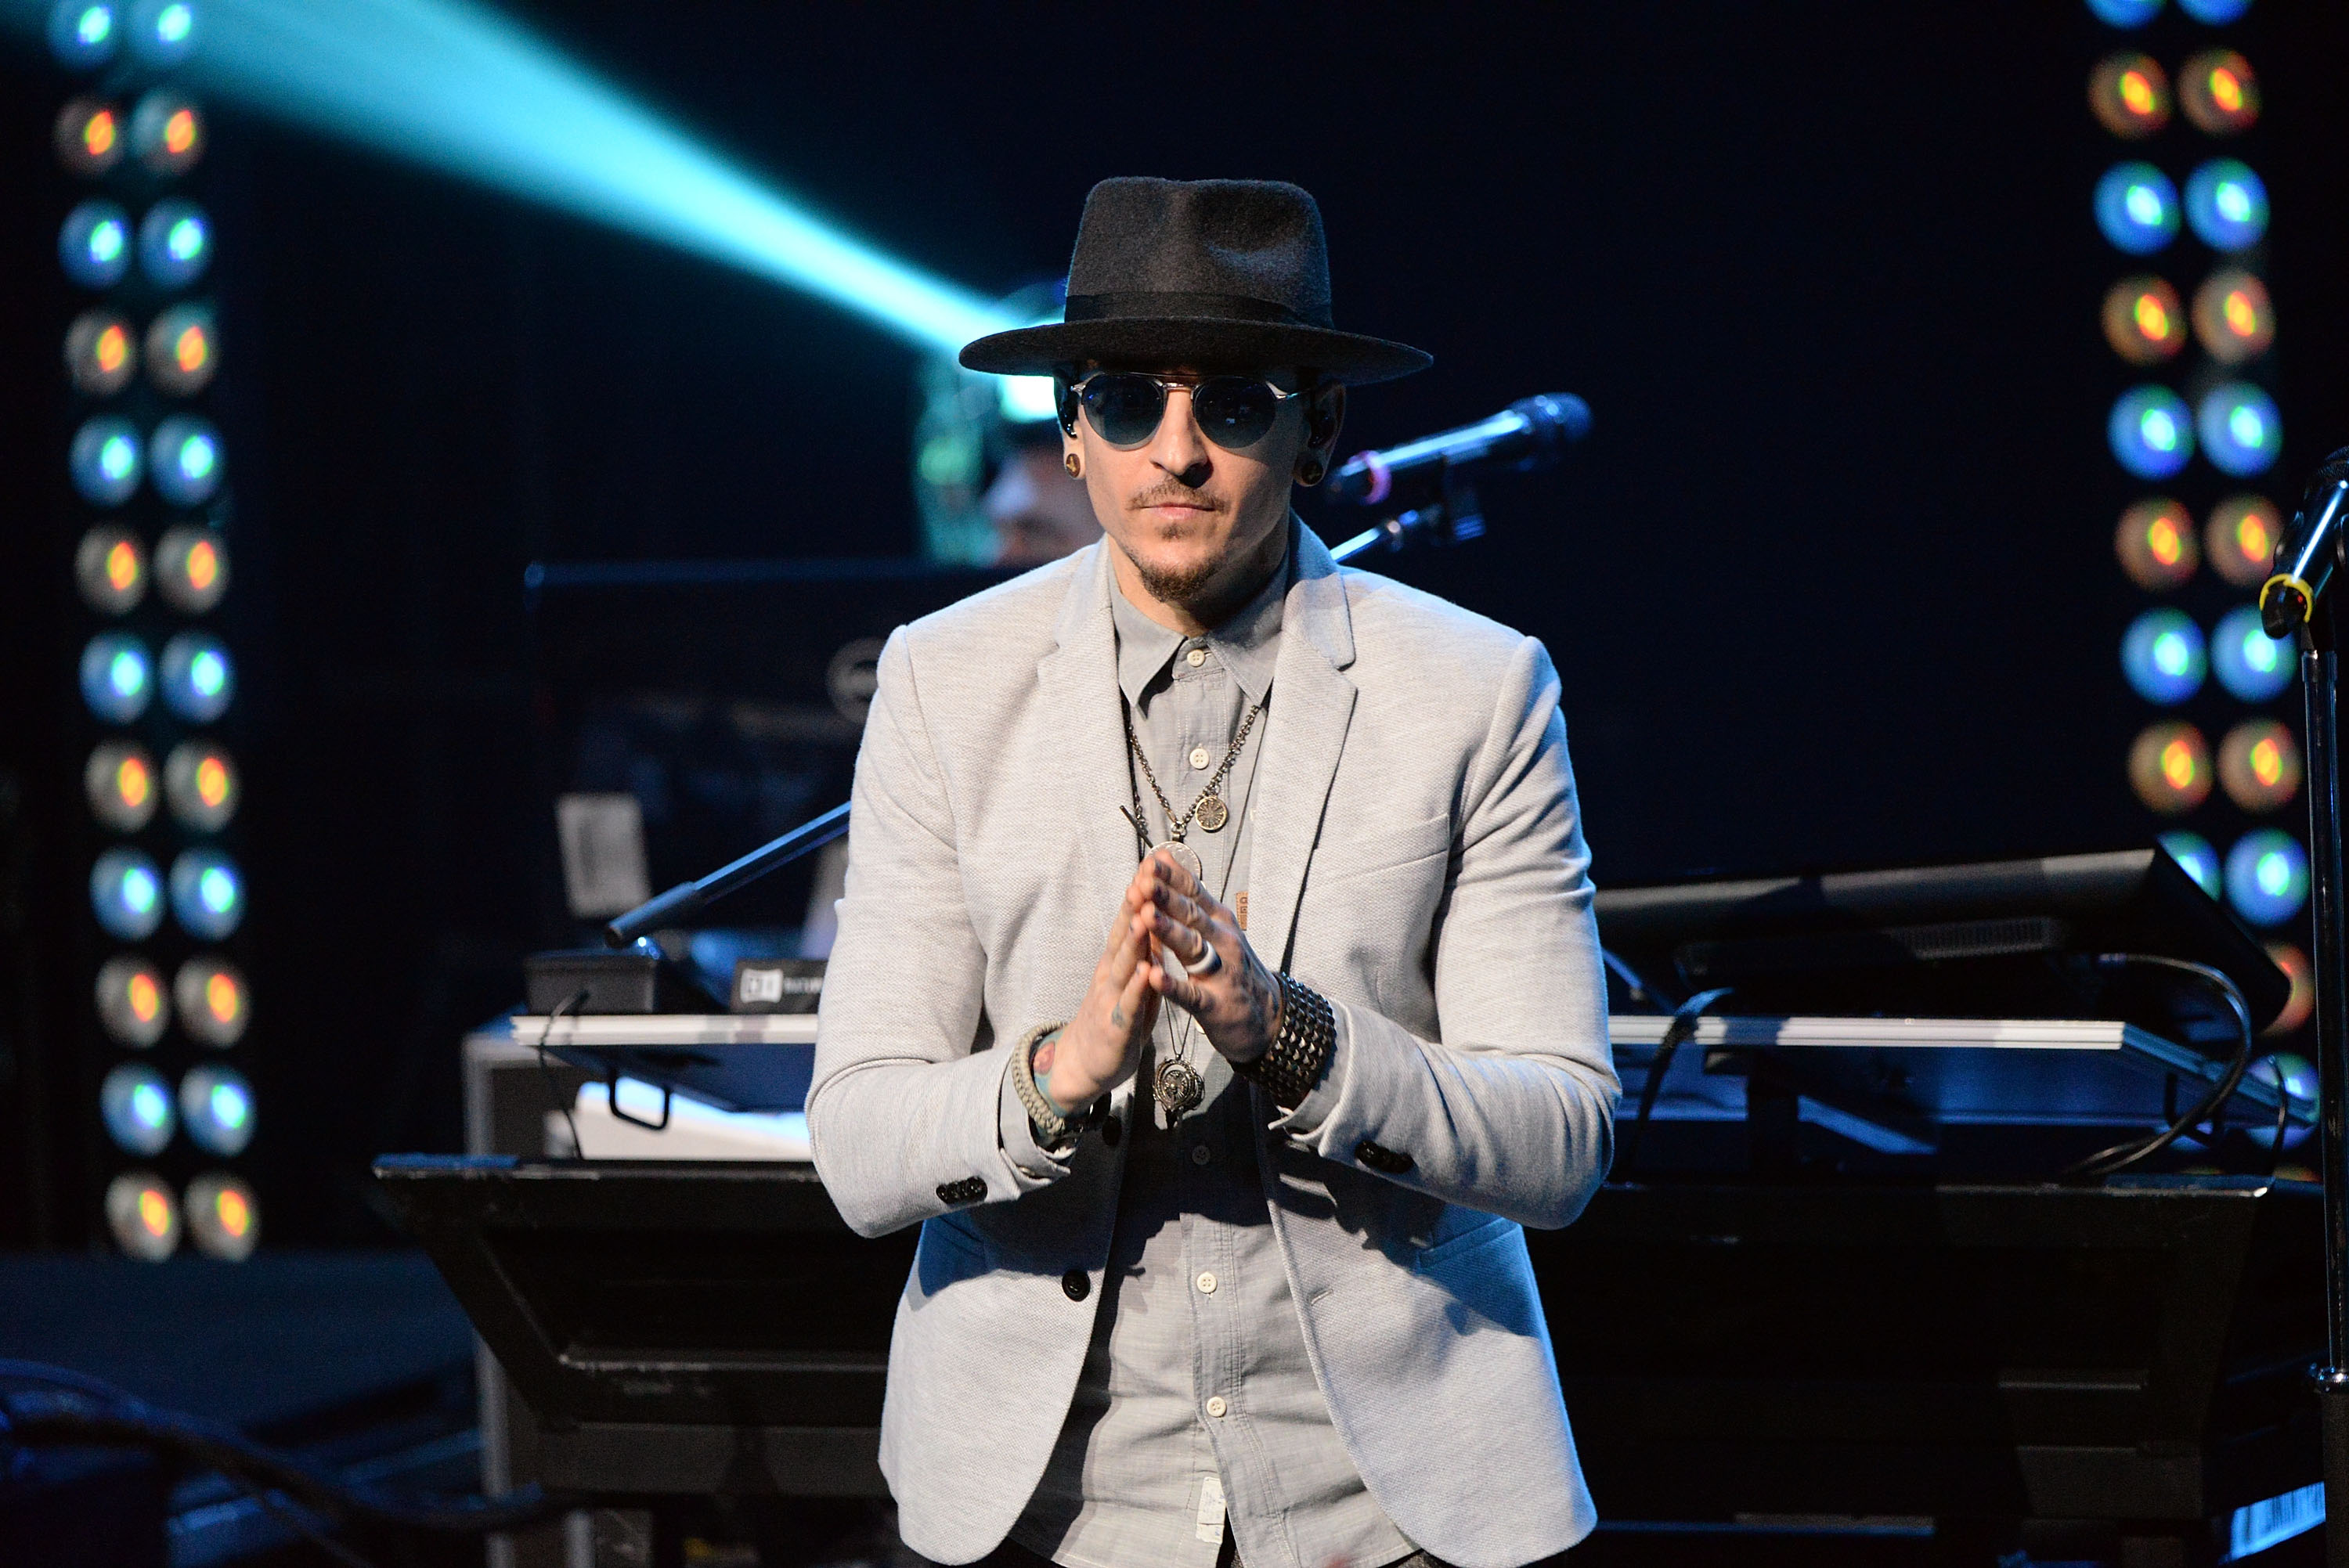 Singer Chester Bennington of Linkin Park performs onstage during the band's  One More Light  album release party at the iHeartRadio Theater on May 22, 2017 in Burbank, California.